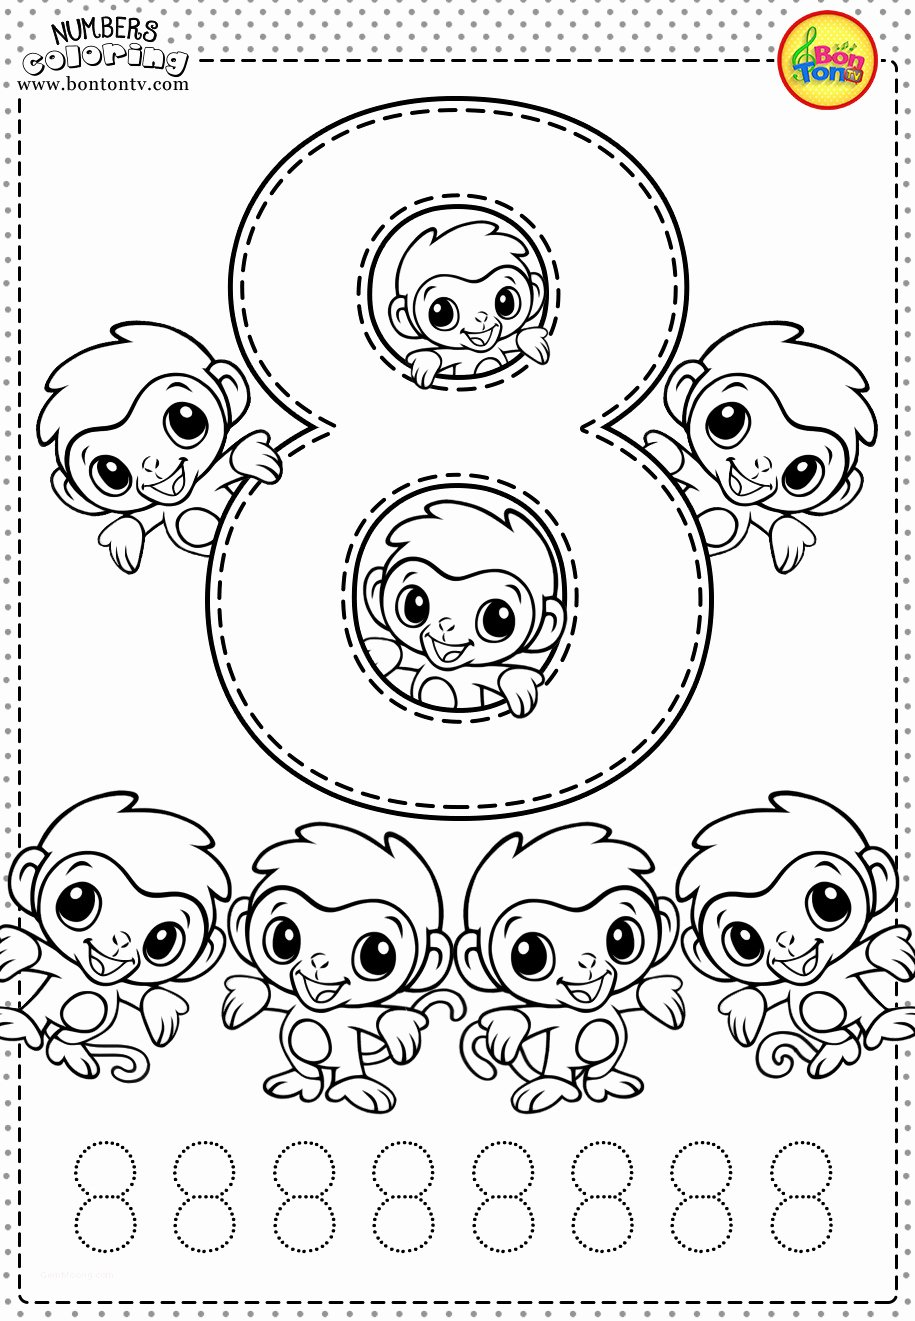 Number 8 Worksheets For Preschoolers Inspirational Coloring Pages Childrens Printable Coloring Pages Awesome Printable Worksheets For Kids